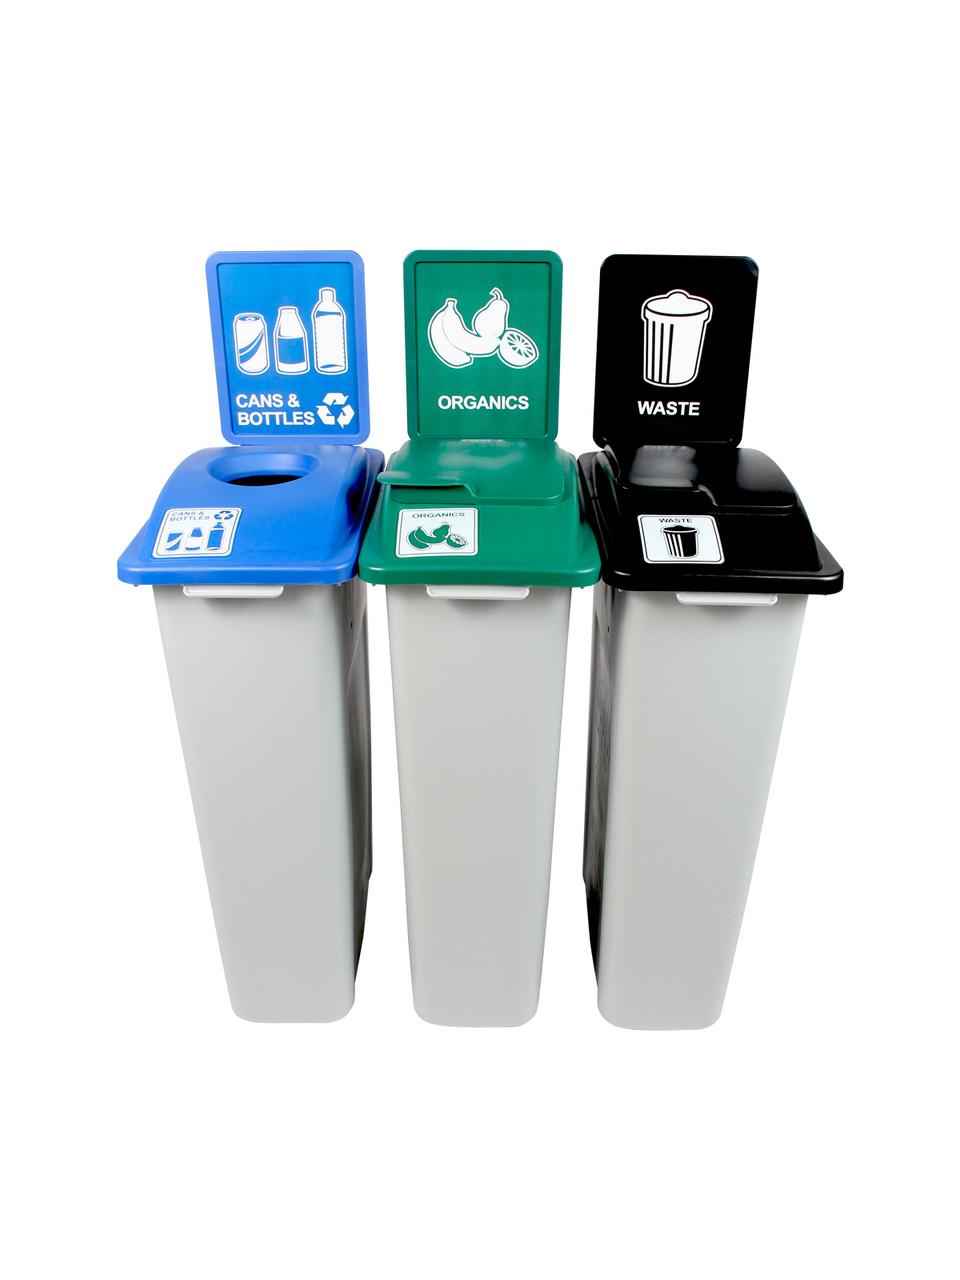 69 Gallon Simple Sort Skinny Recycling Center 8105070-155 (Cans, Organics Lift Lid, Waste Lift Lid)